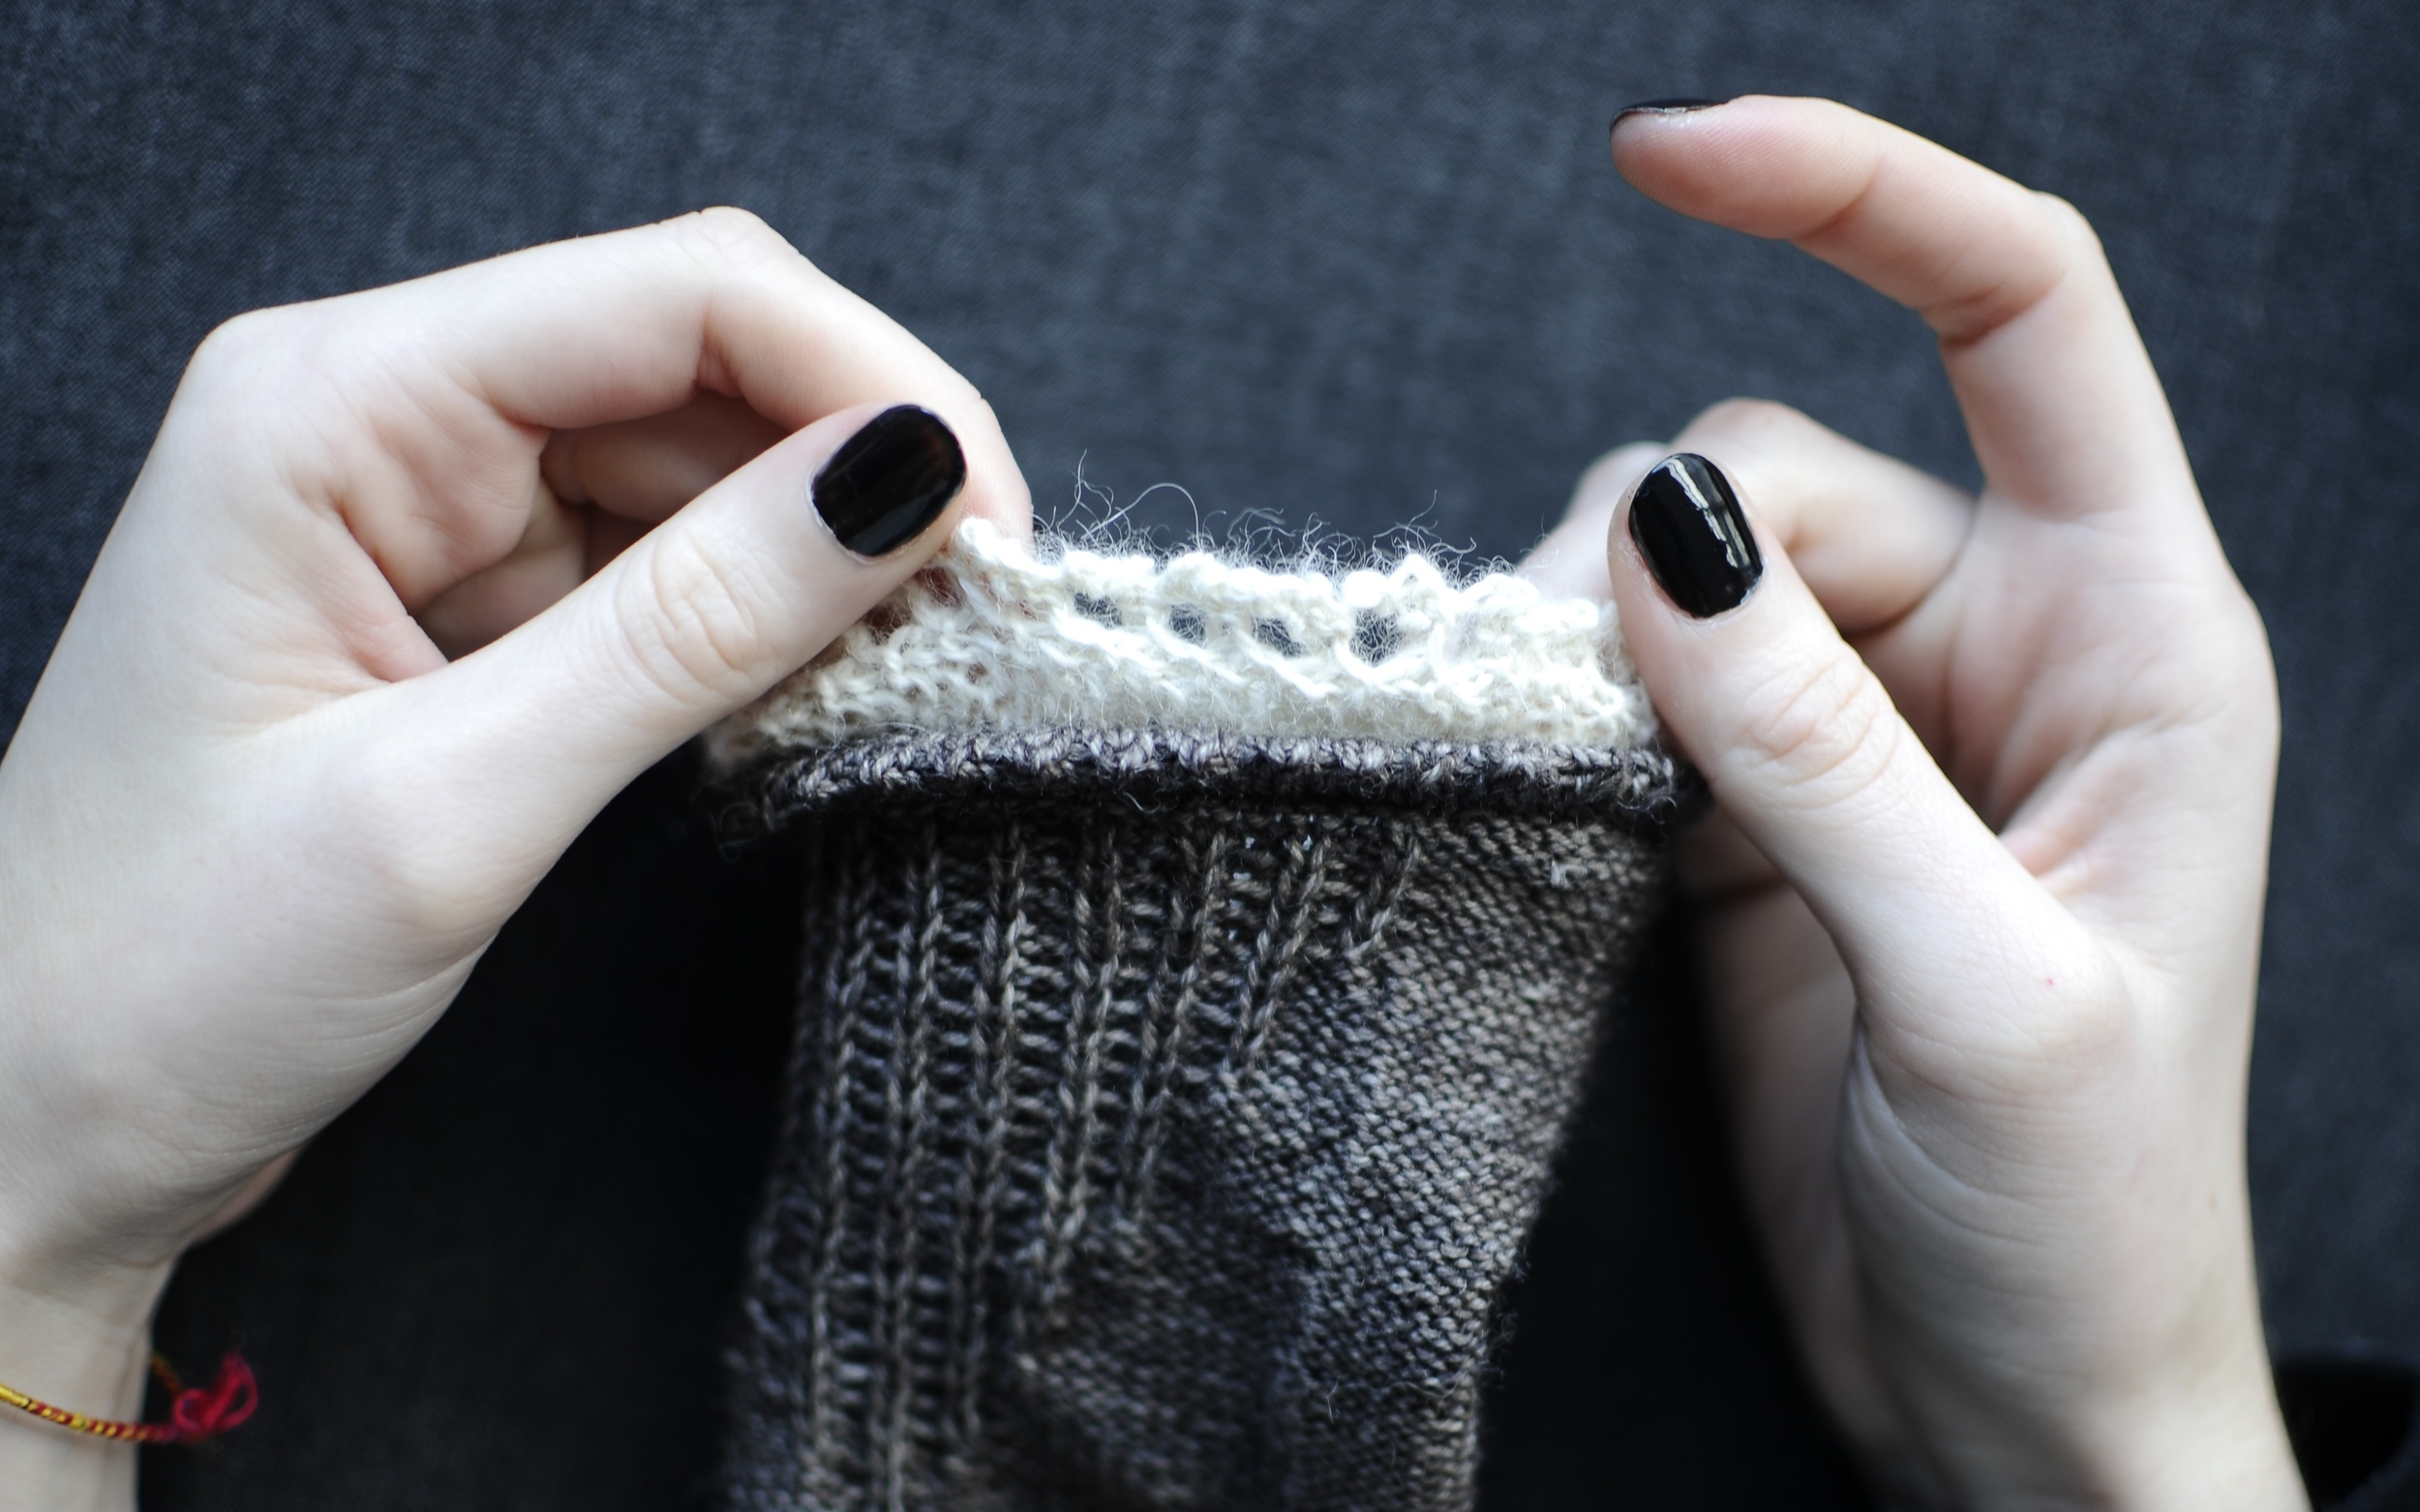 17. Turn sock right side out again and voila! You should have a double layer of picot and lace trim.